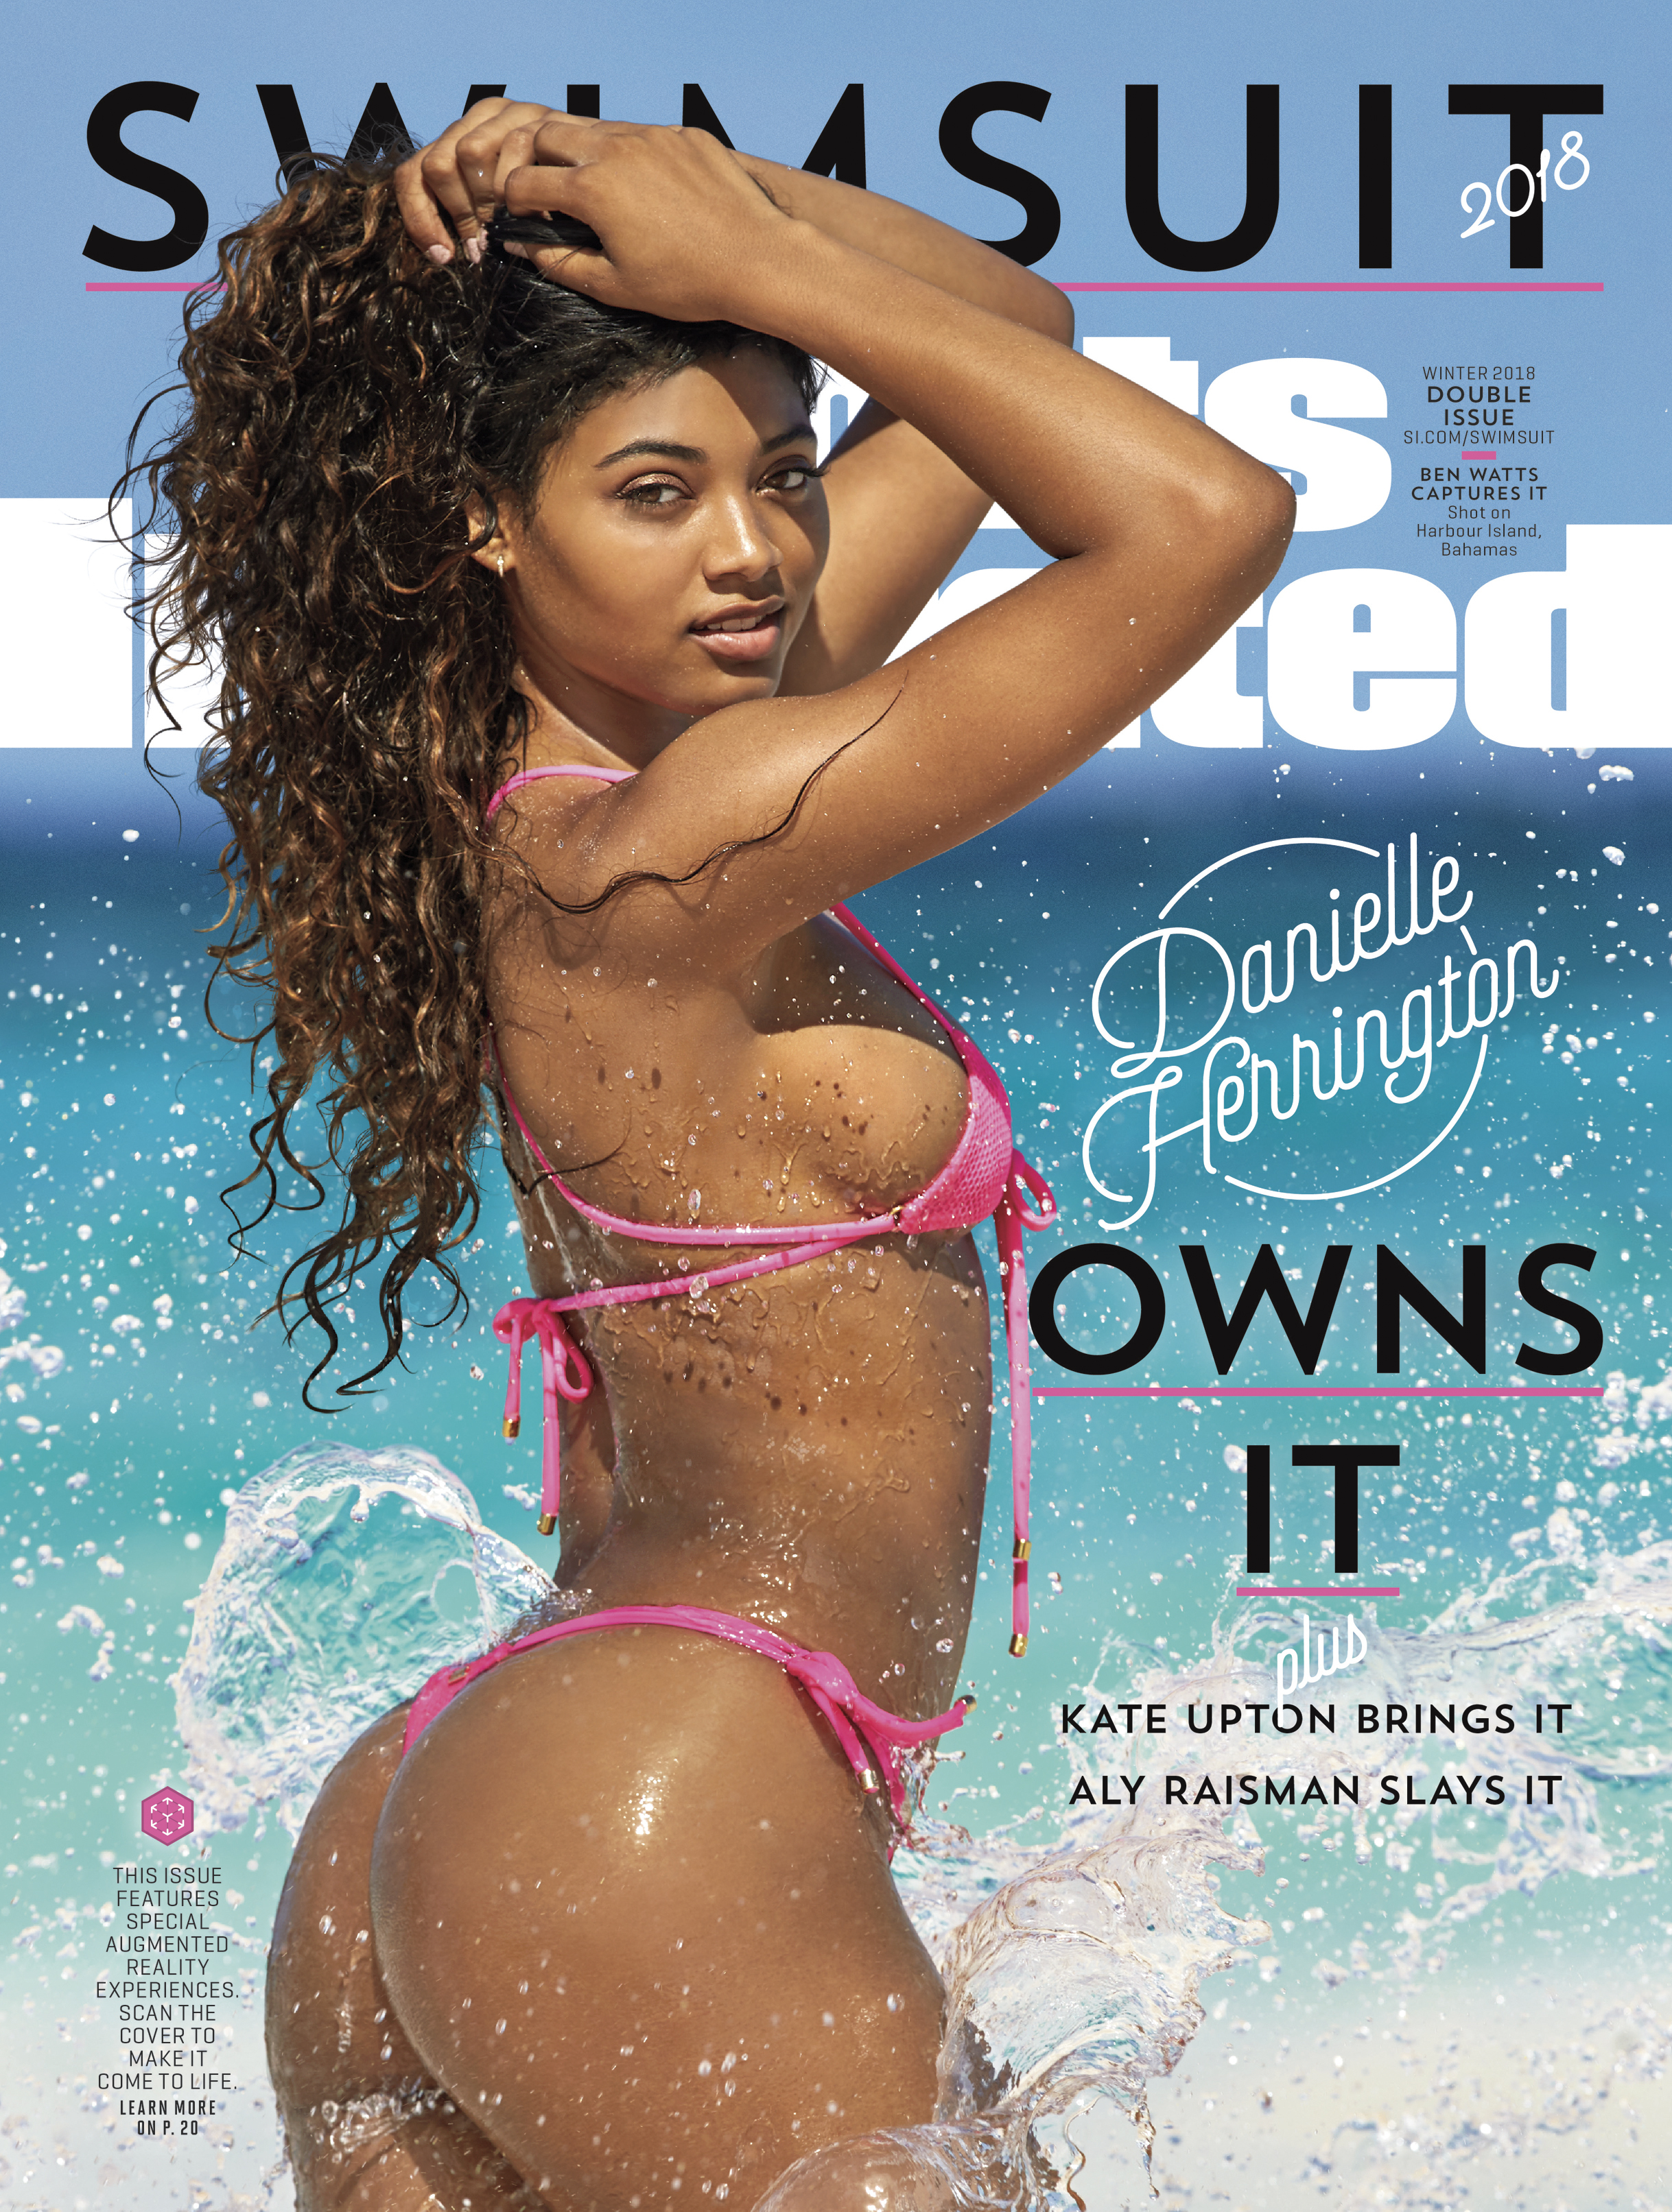 """8d48997206 Danielle Herrington """"Owns It"""" as the 2018 Sports Illustrated ..."""